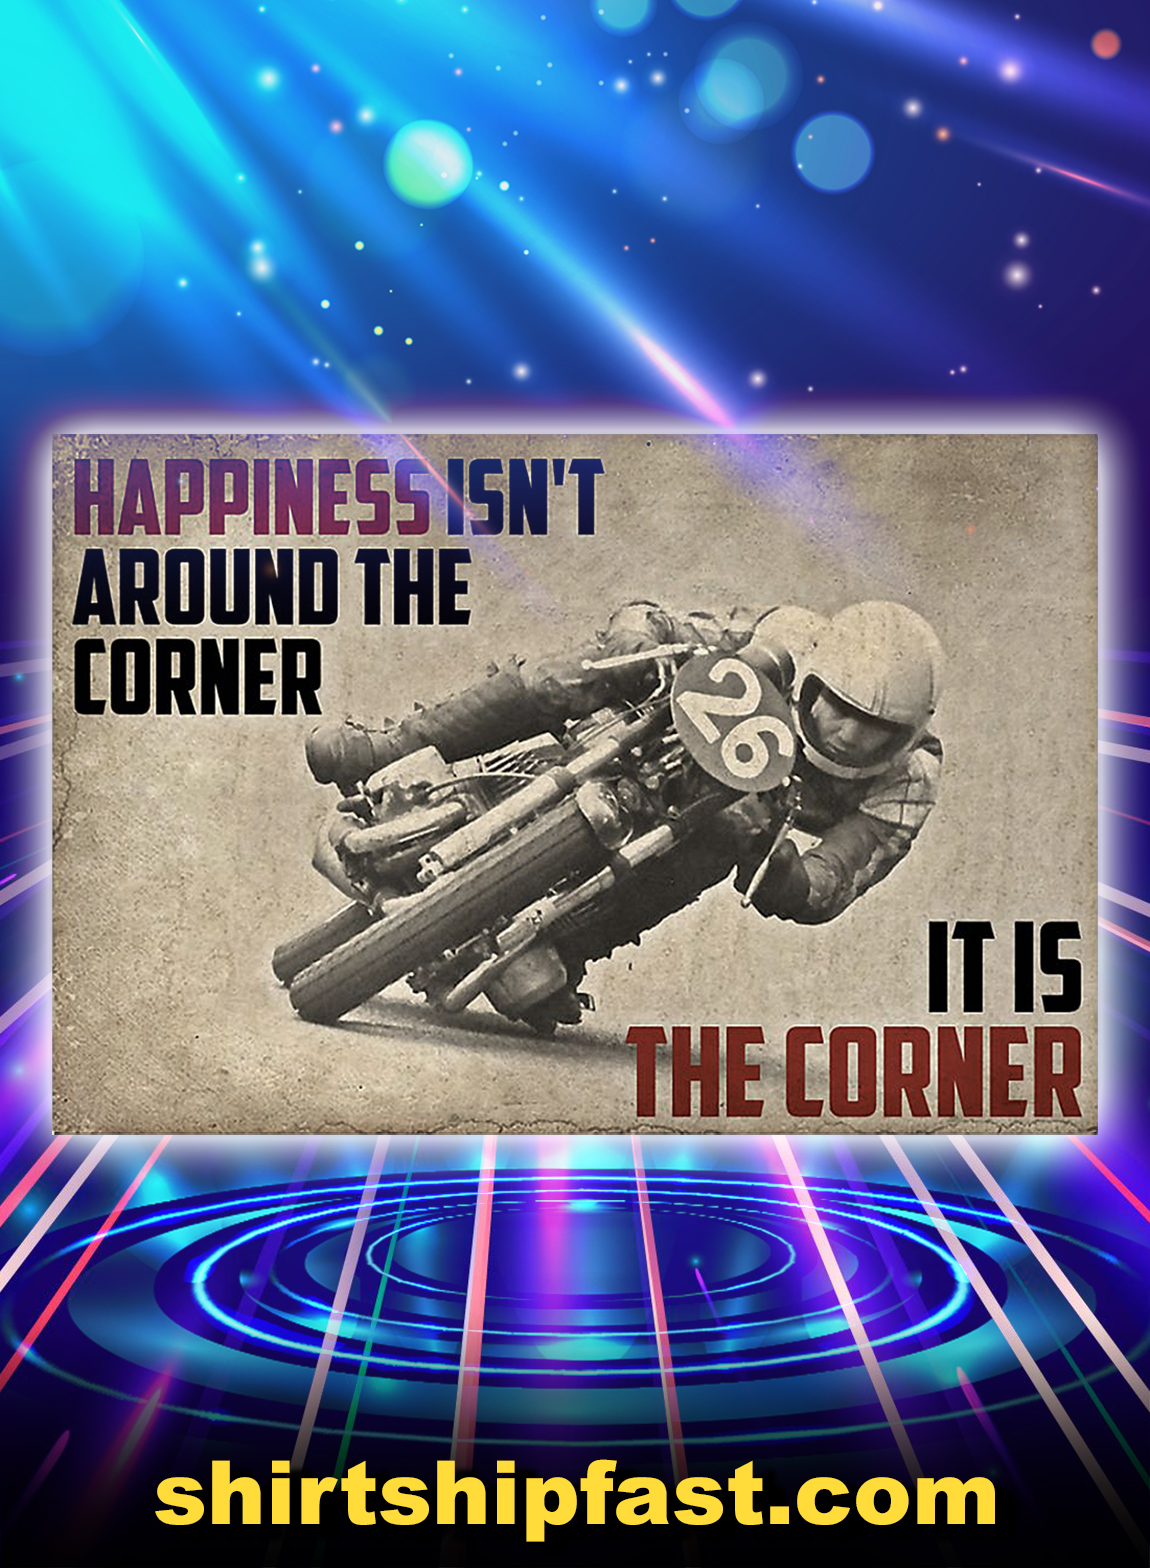 Poster Motorcycle happiness isn't around the corner - A3